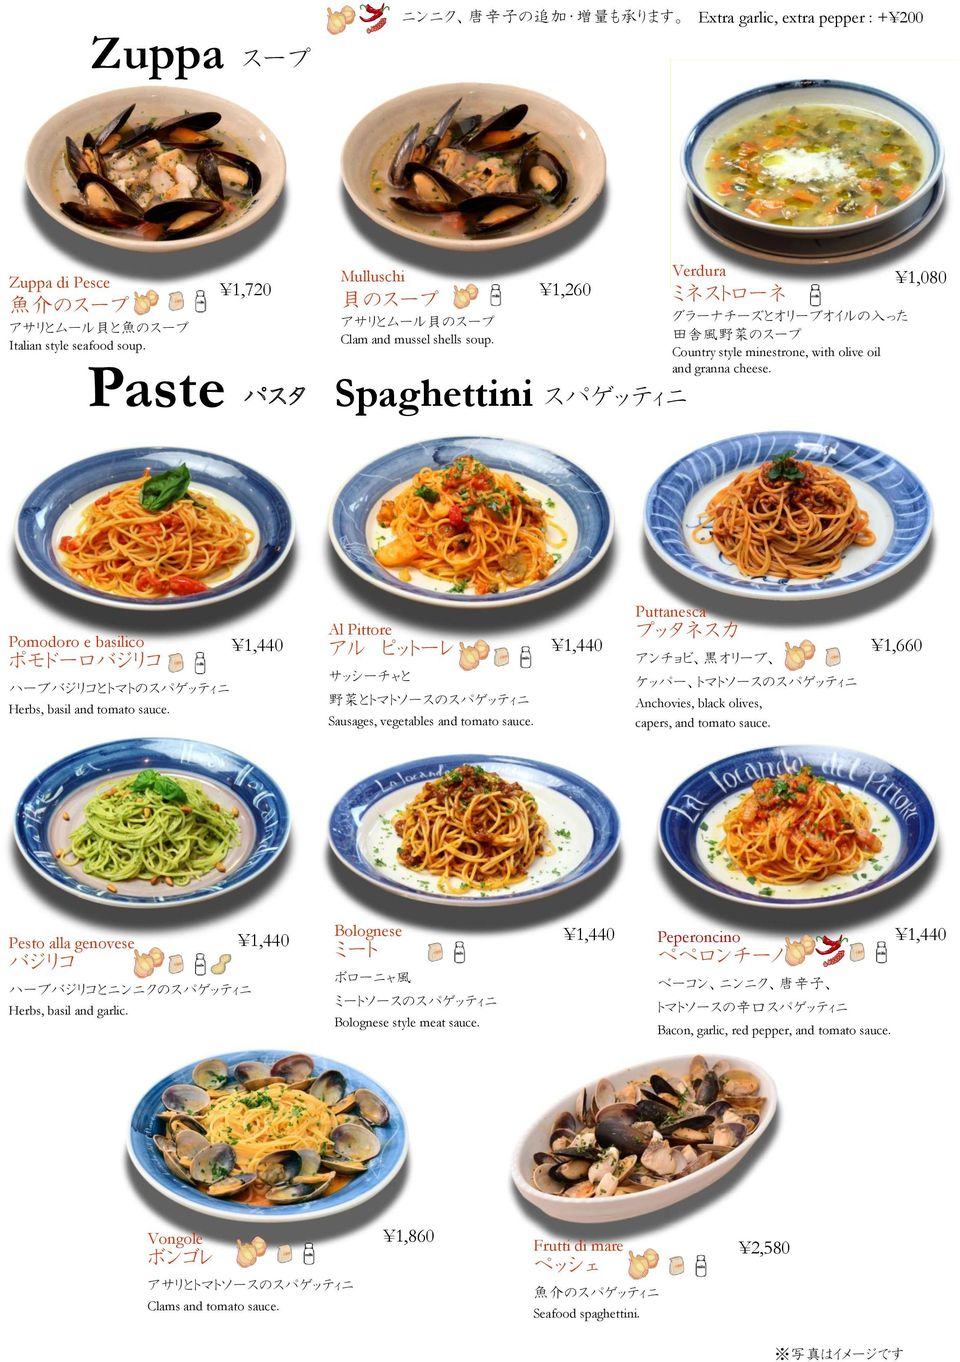 1,260 Spaghettini スパゲッティニ Verdura 1,080 ミネストローネ グラーナチーズとオリーブオイルの 入 った 田 舎 風 野 菜 のスープ Country style minestrone, with olive oil and granna cheese.